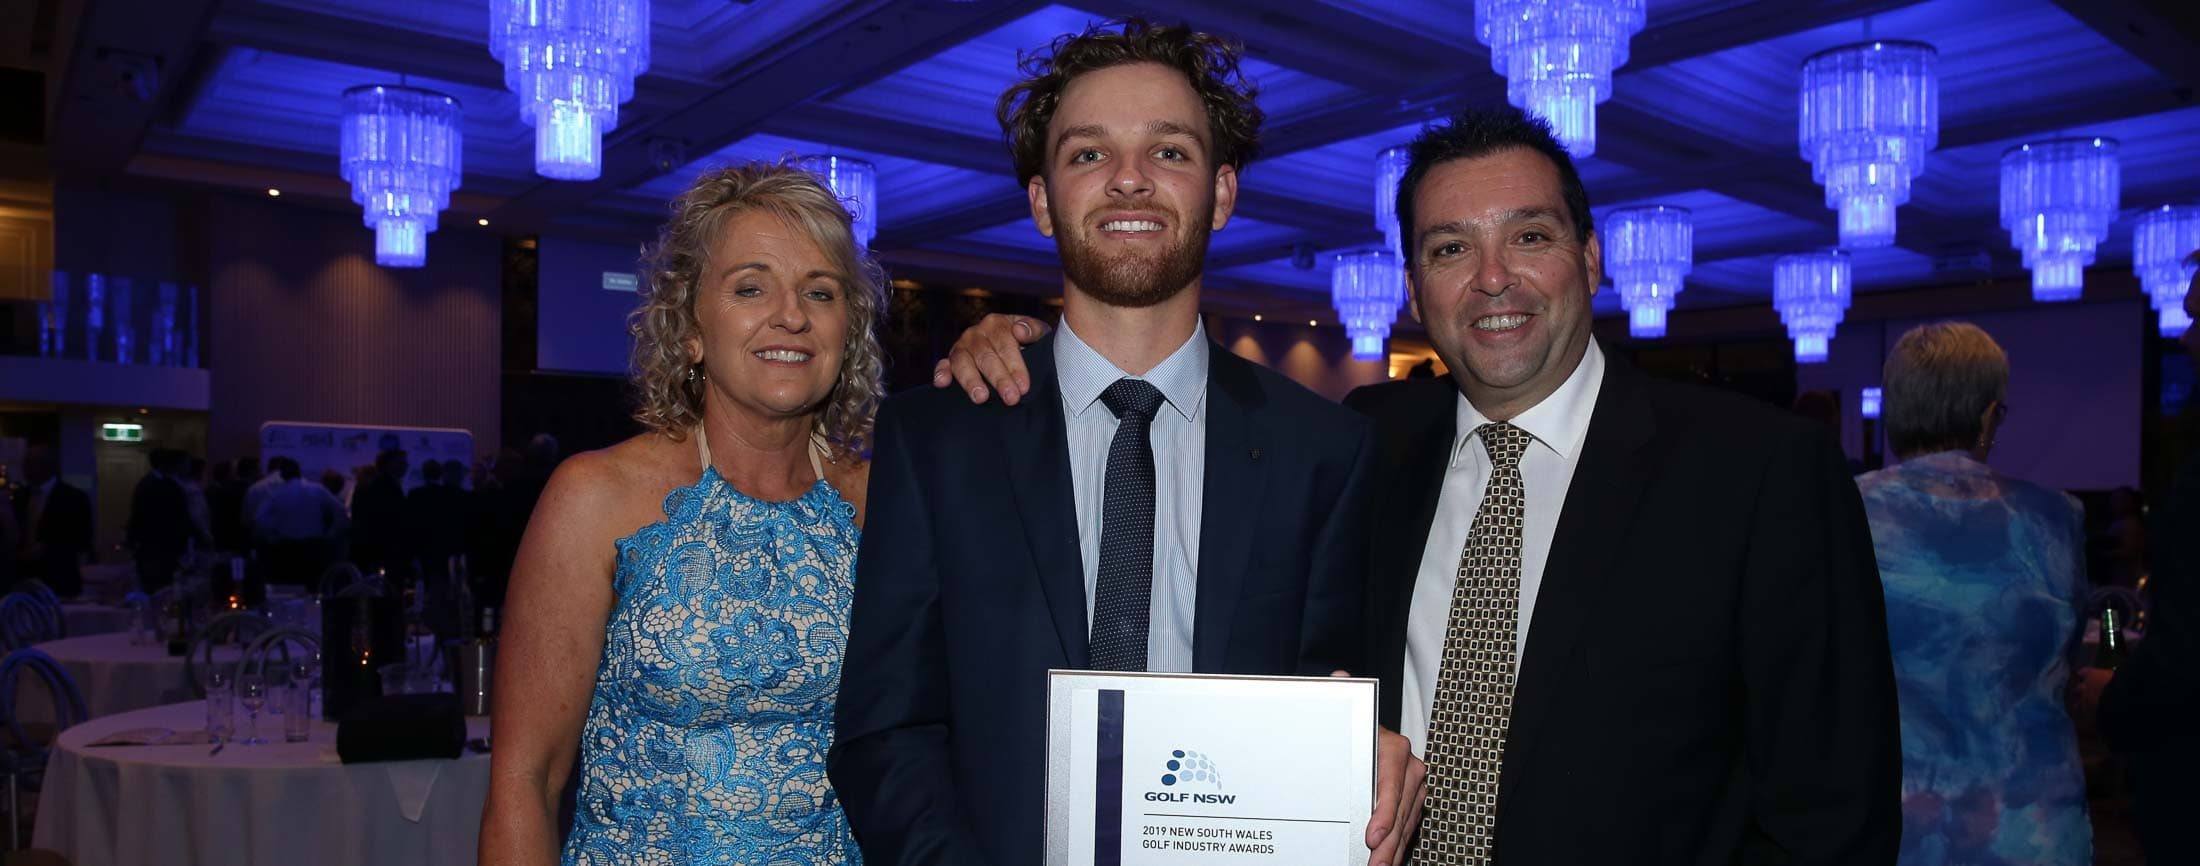 NSW Golf's finest honoured at 2019 Industry Awards